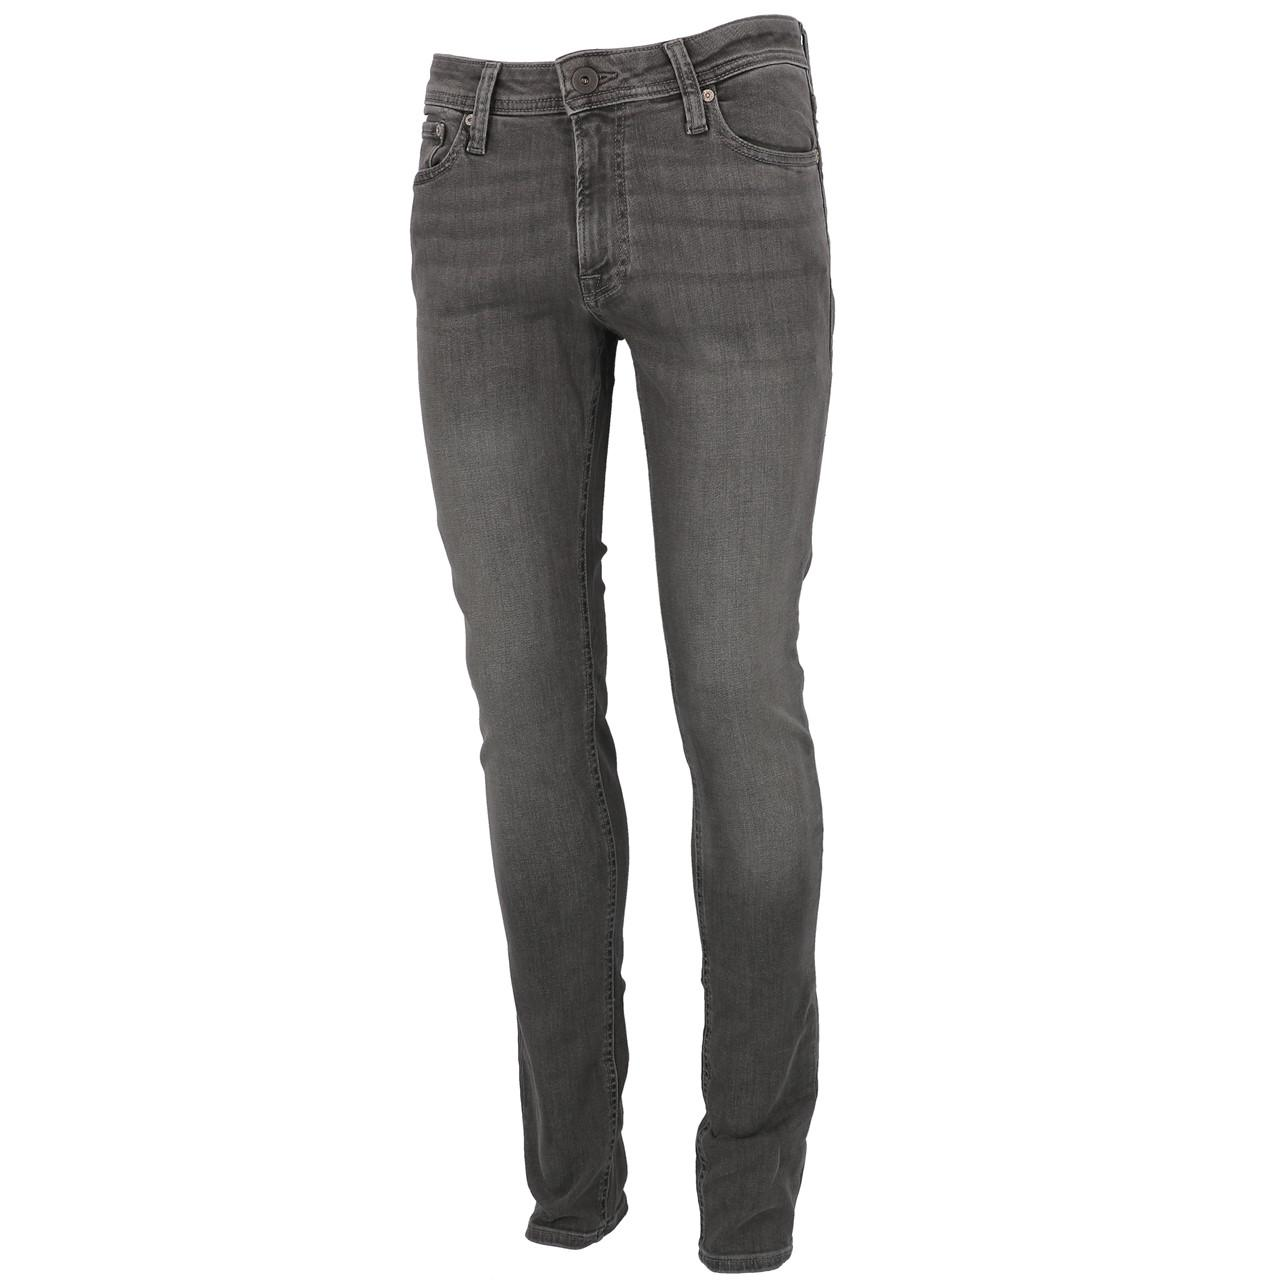 Jeans-Pants-Jack-and-jones-Liam-32-Grey-Denim-Jeans-Grey-19911-New